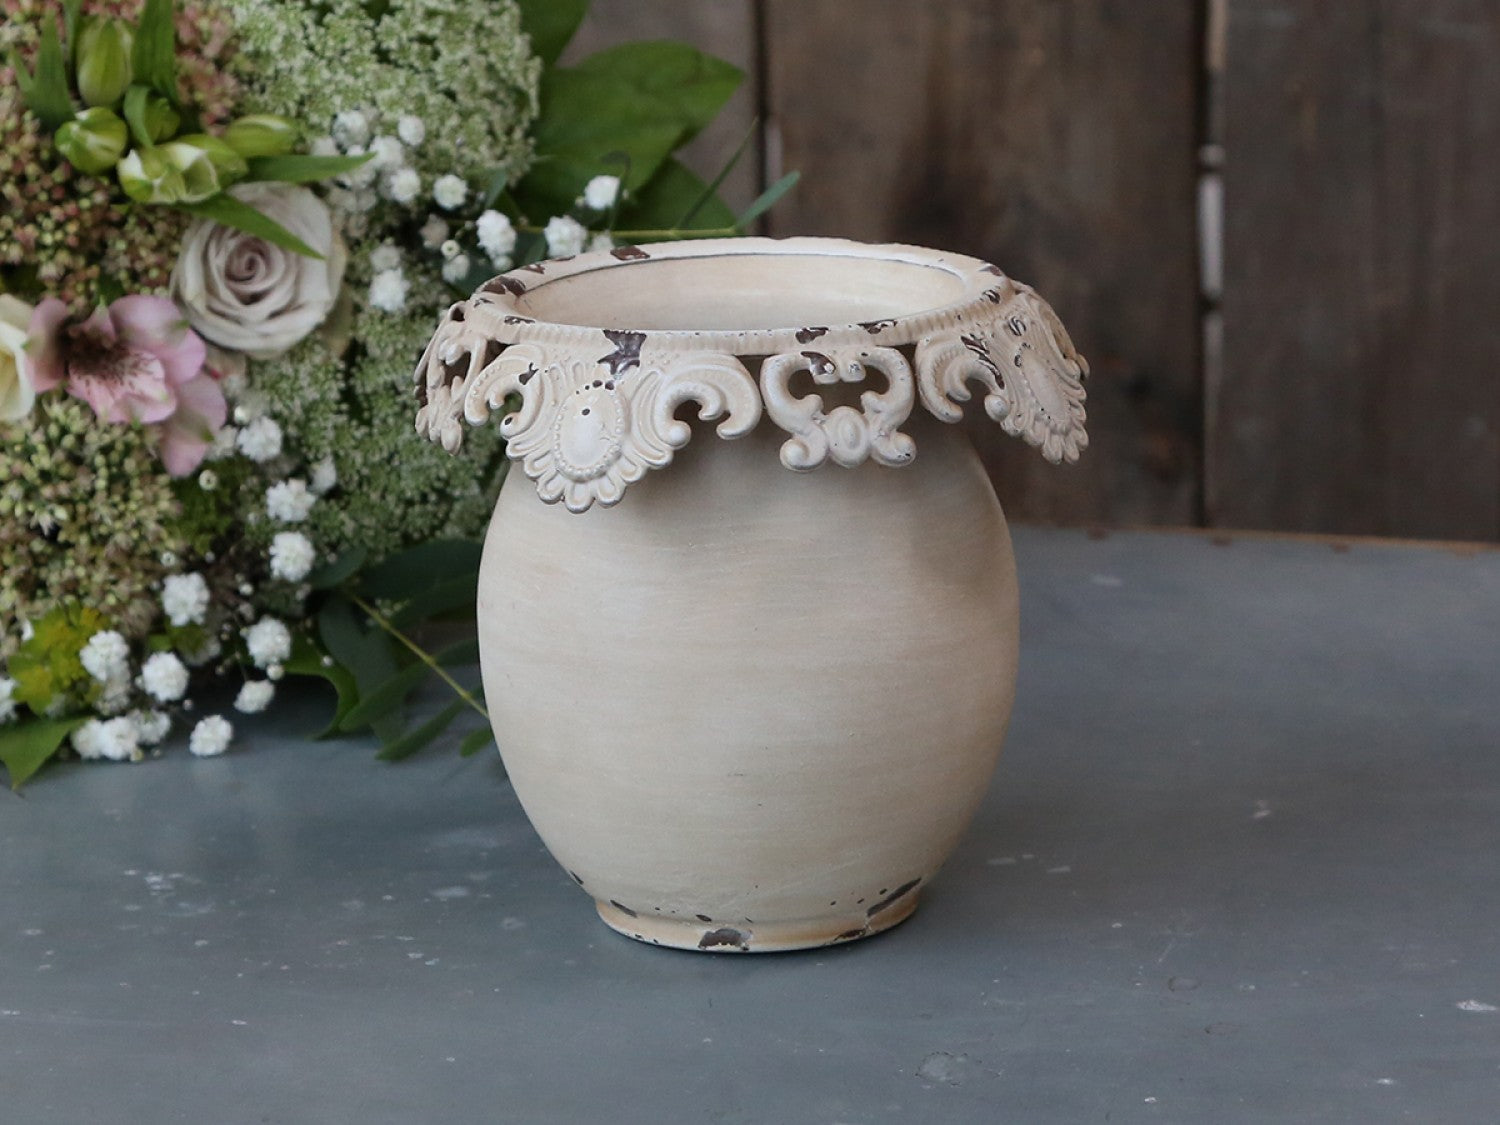 Tin flower pot / vase with lace edge